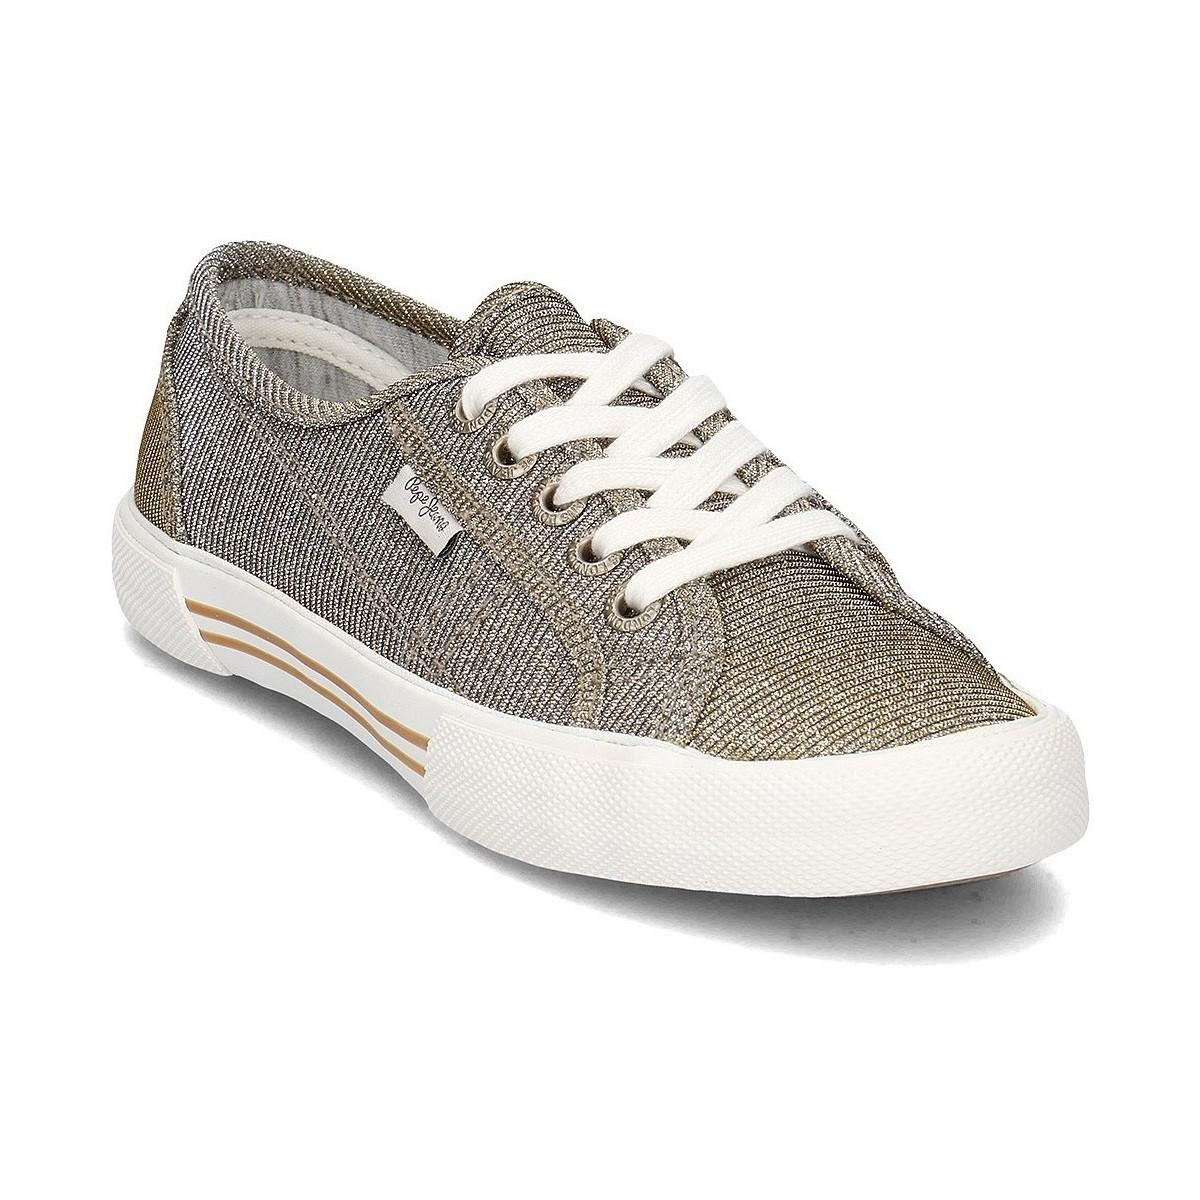 Womens Aberlady Nuit Low-Top Sneakers Pepe Jeans London Cheap In China Outlet Affordable Ebay Online Sale Best Place Cheap Sale Get Authentic r7qp7Ihw